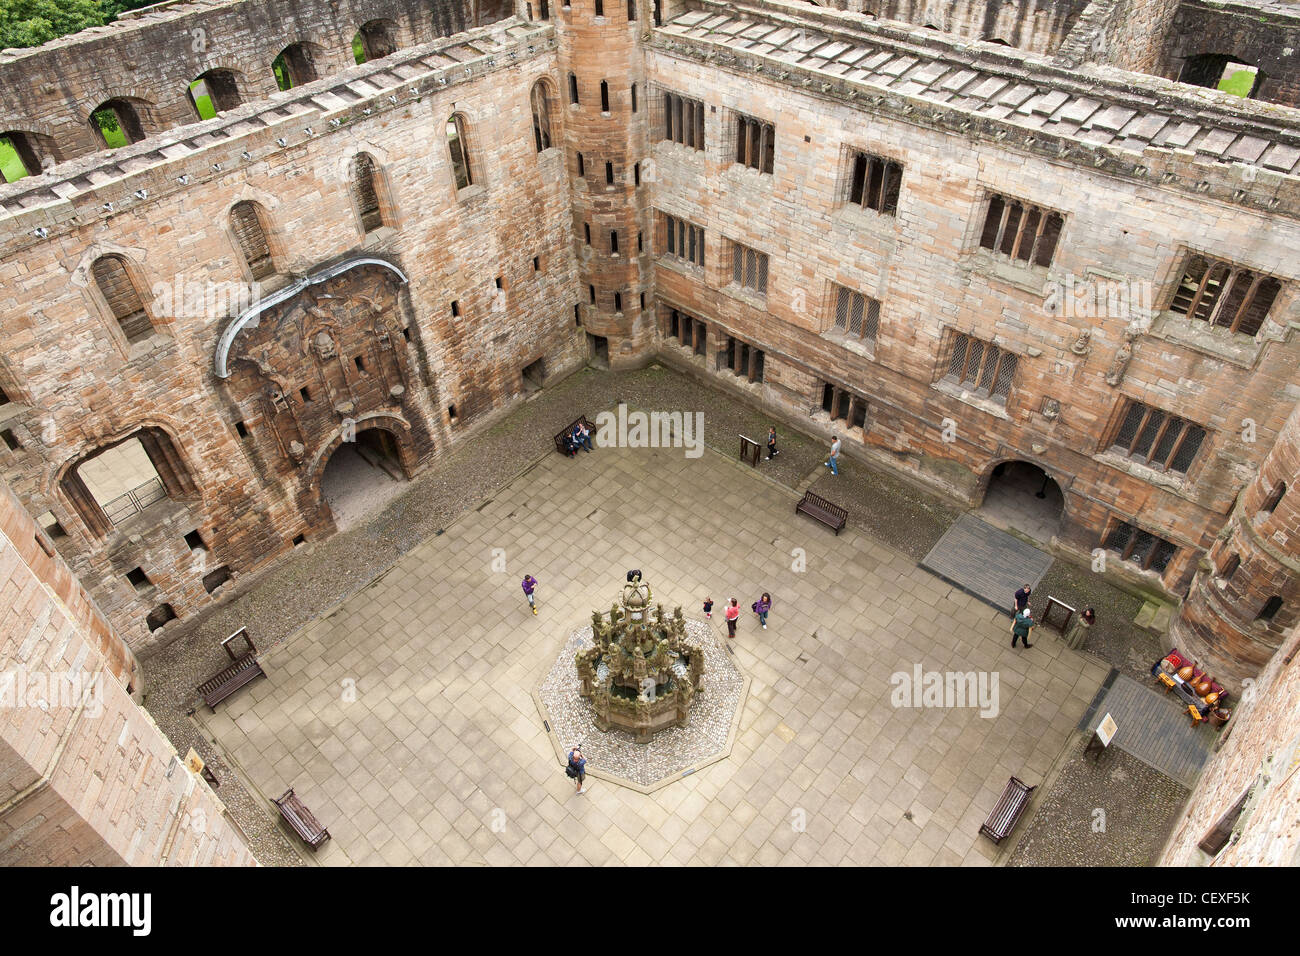 A view from above into the courtyard of the ruins of Linlithgow Palace in Scotland. The palace was home to kings Stock Photo